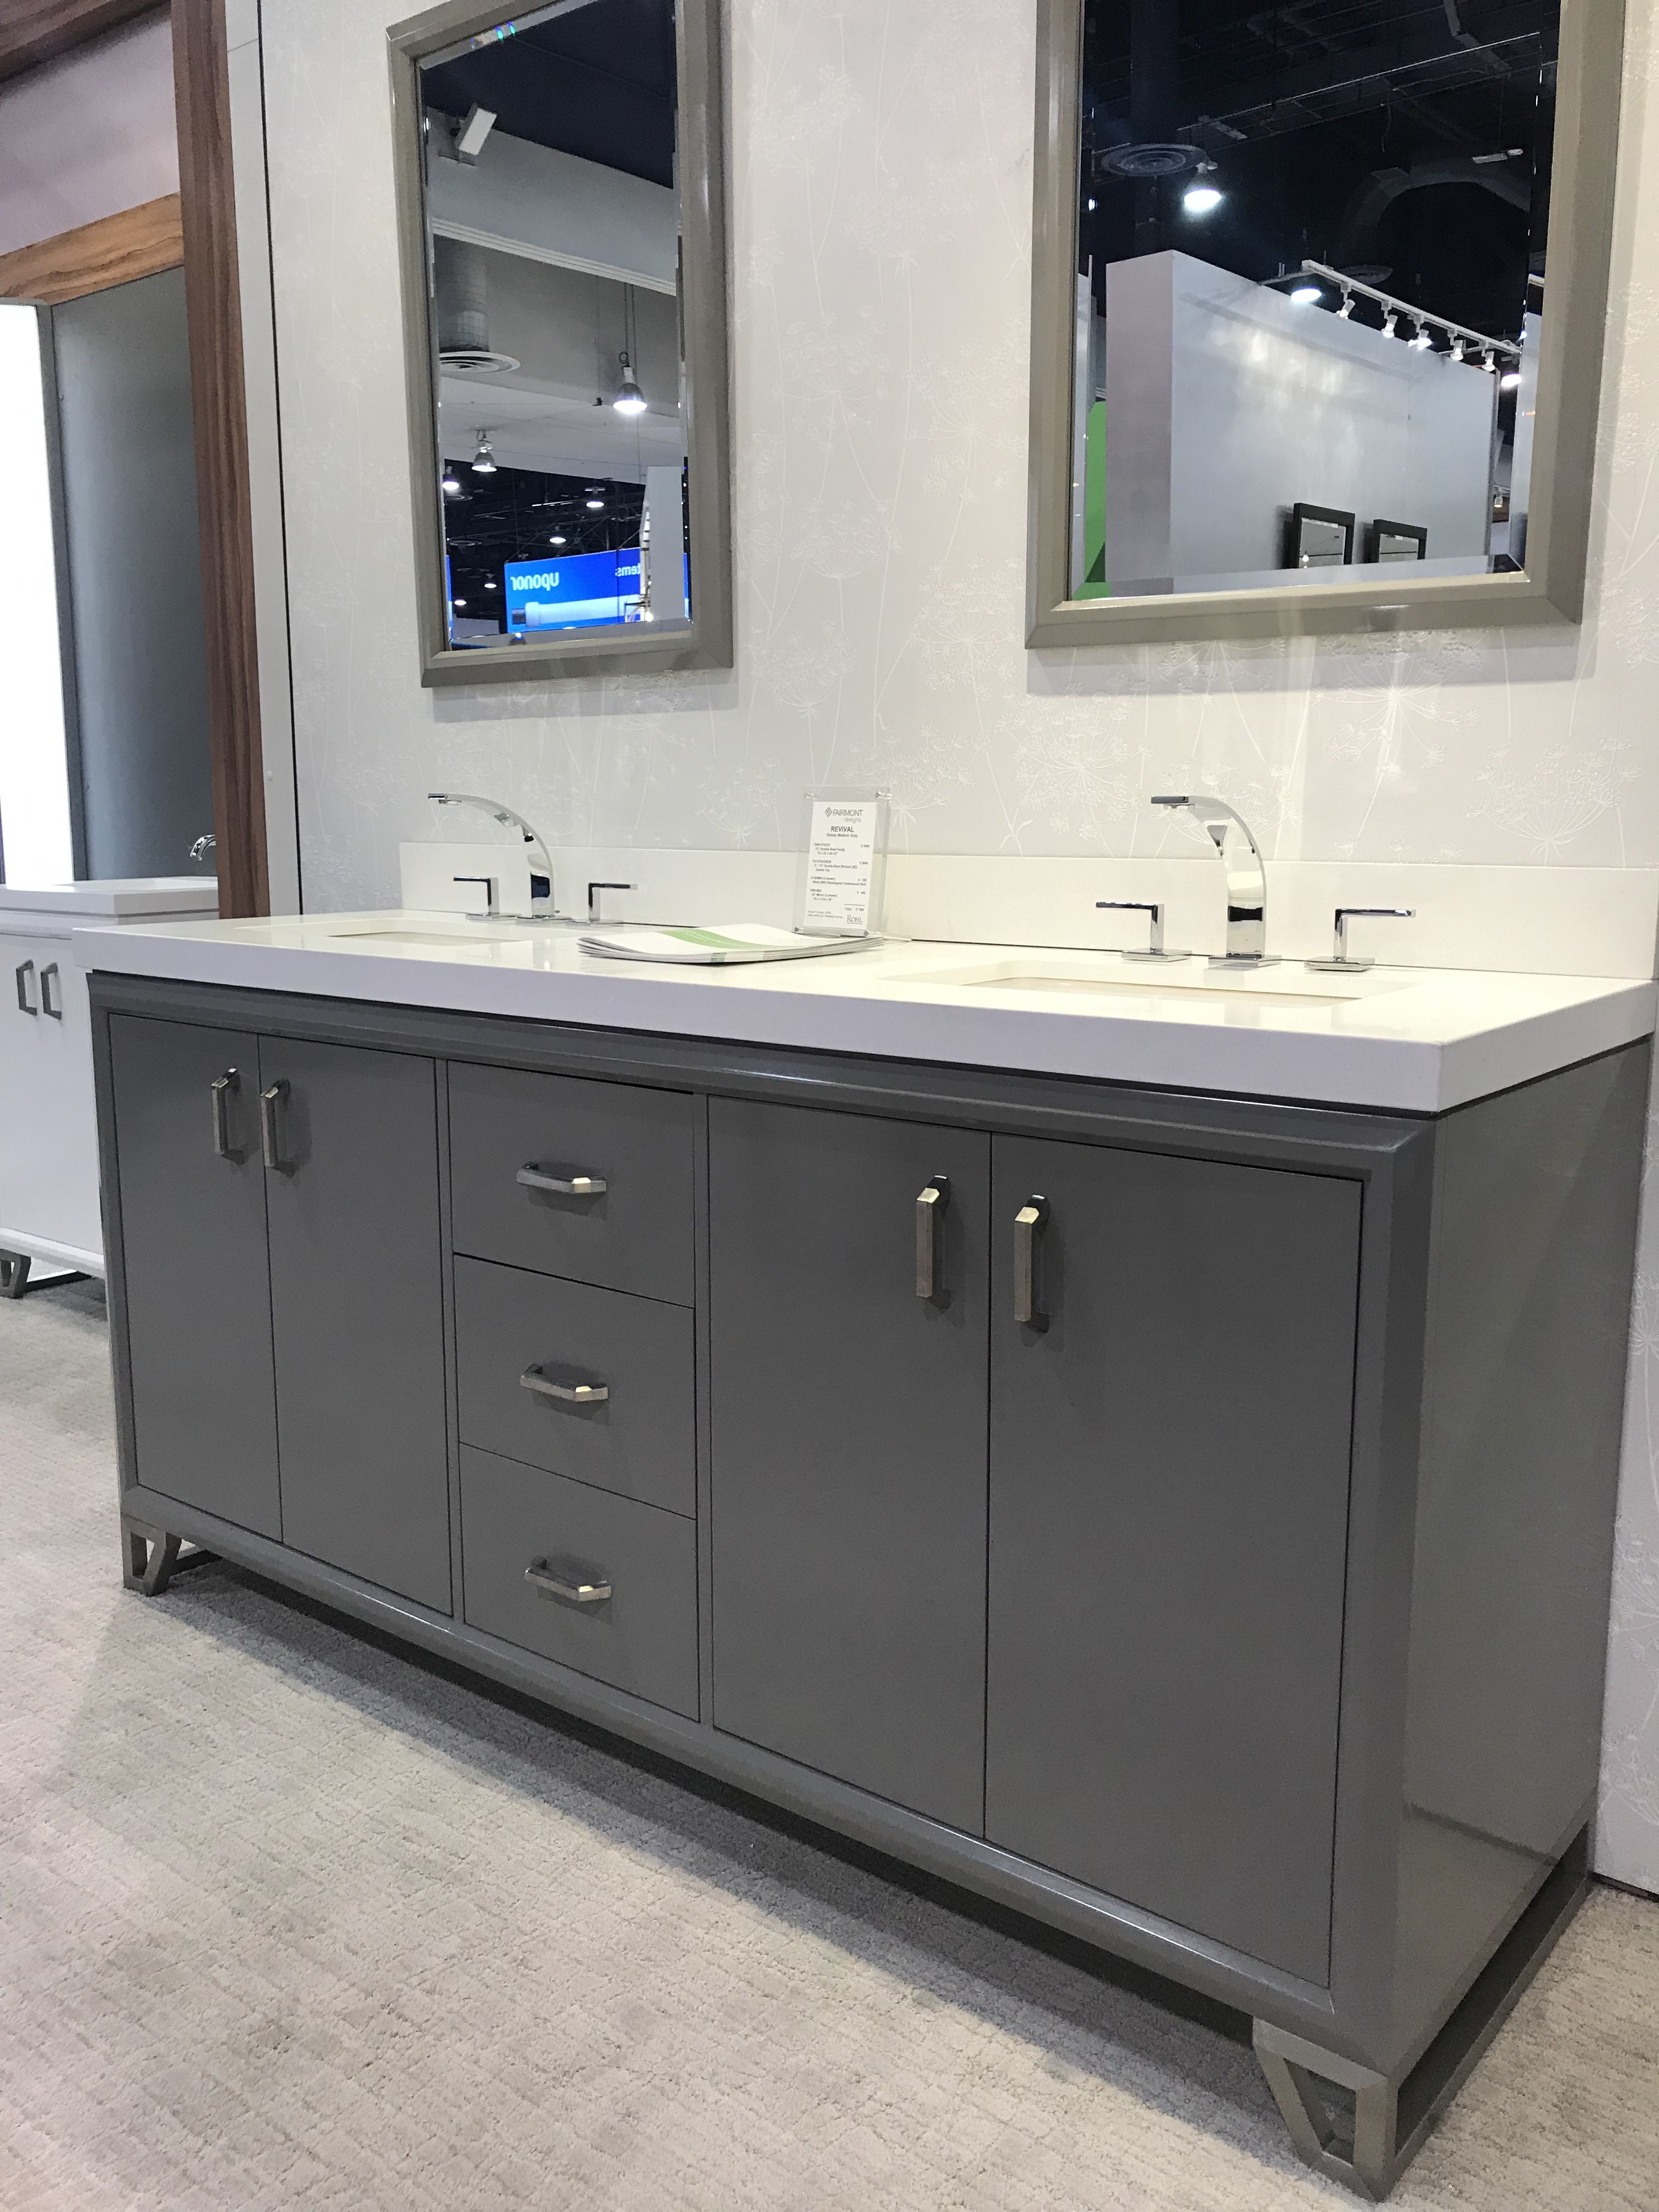 Pin by Fairmont Designs on 2019 KBIS - Las Vegas | Gray ...